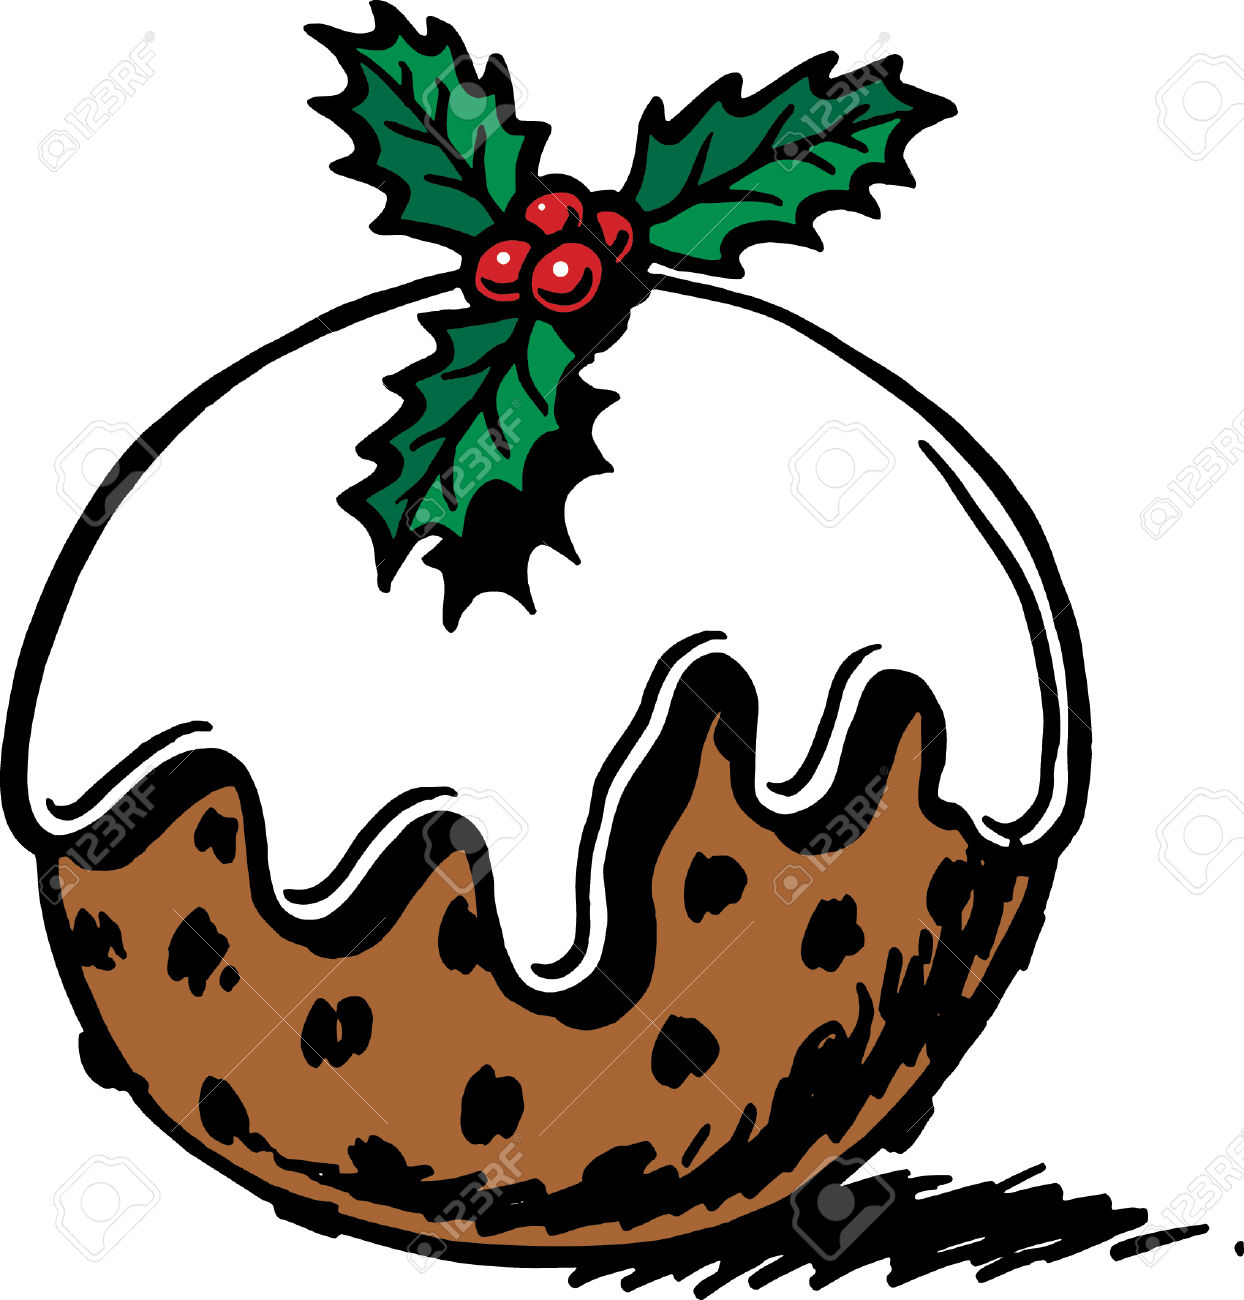 Christmas pudding clipart 1 » Clipart Station.